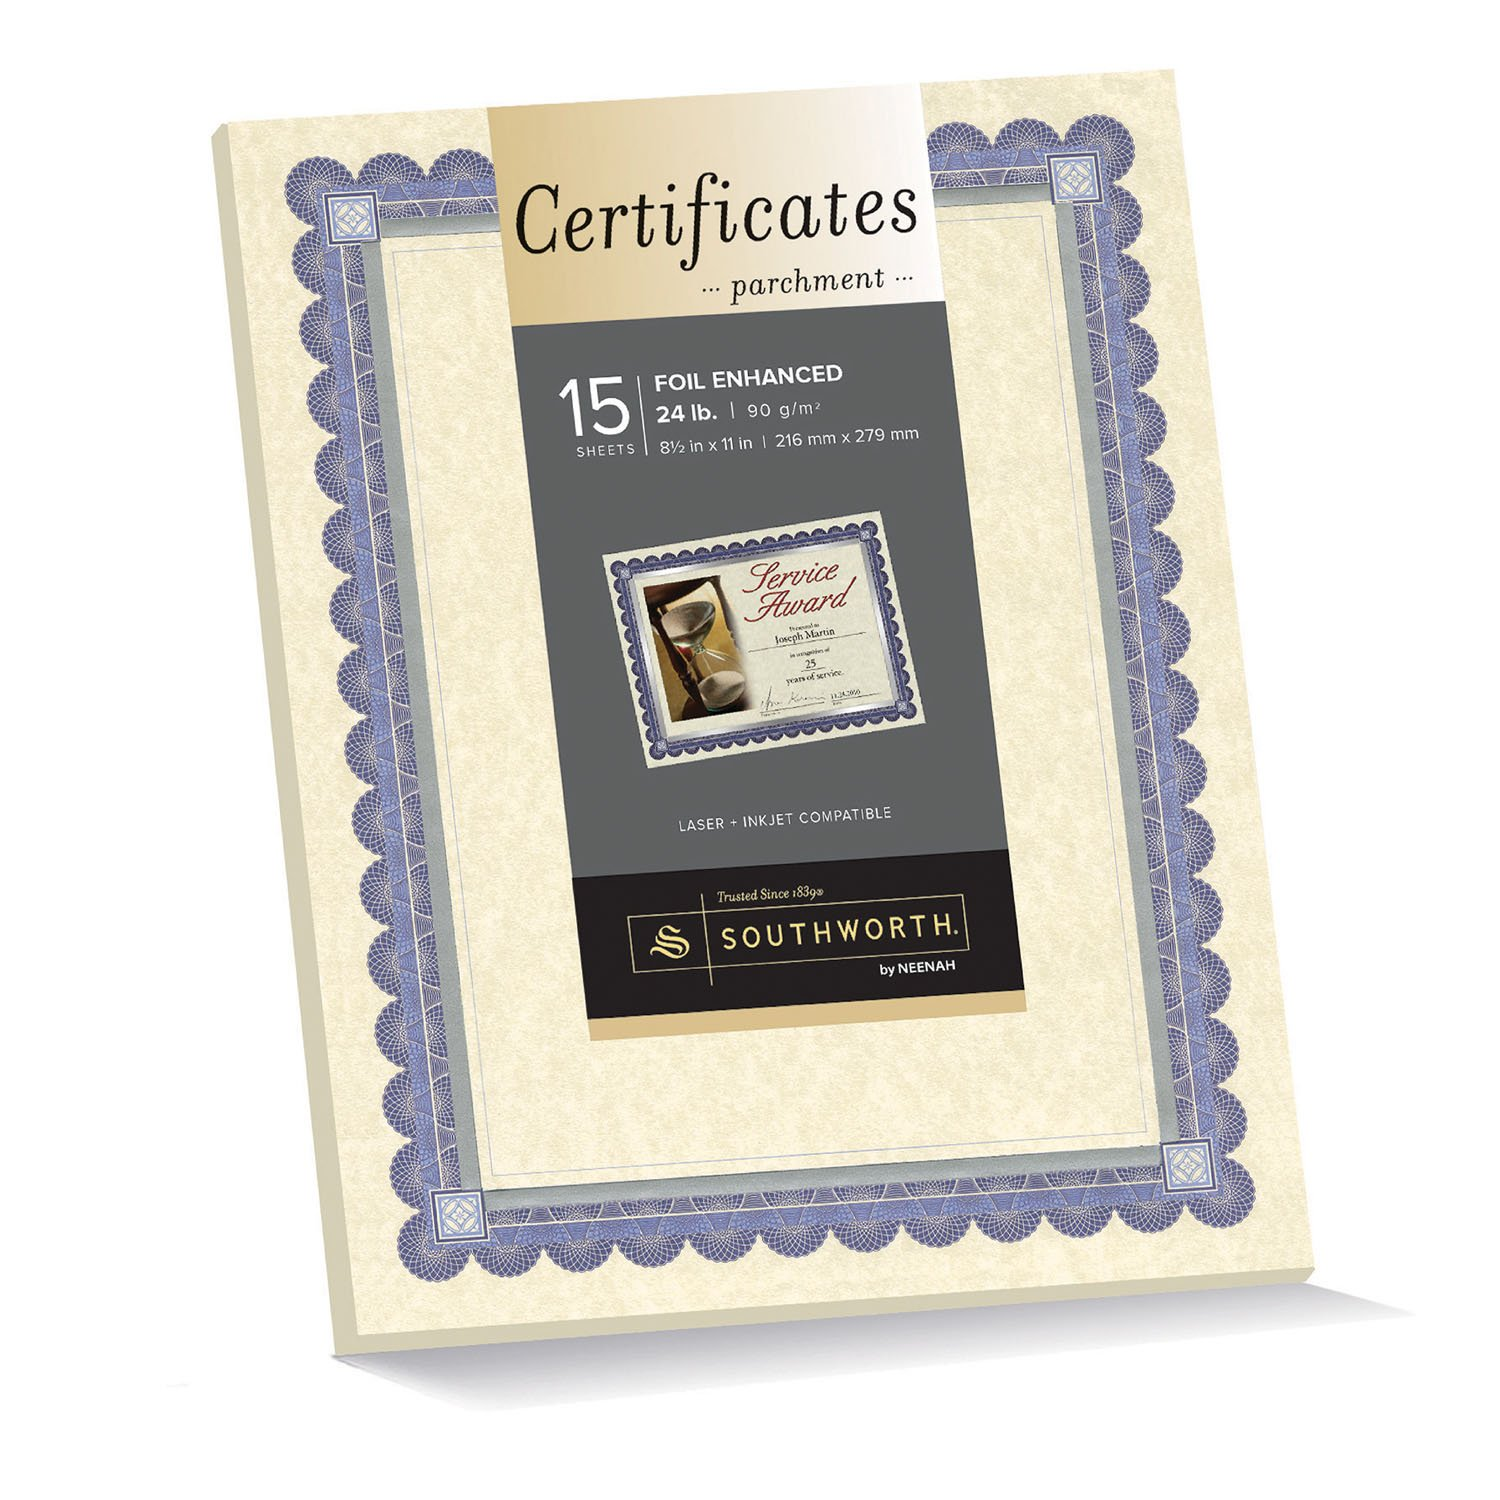 awards certificates amazon com office school supplies southworth ivory parchment foil enhanced certificates 8 5 x 11 inches blue ink and silver foil border 15 count ct1r